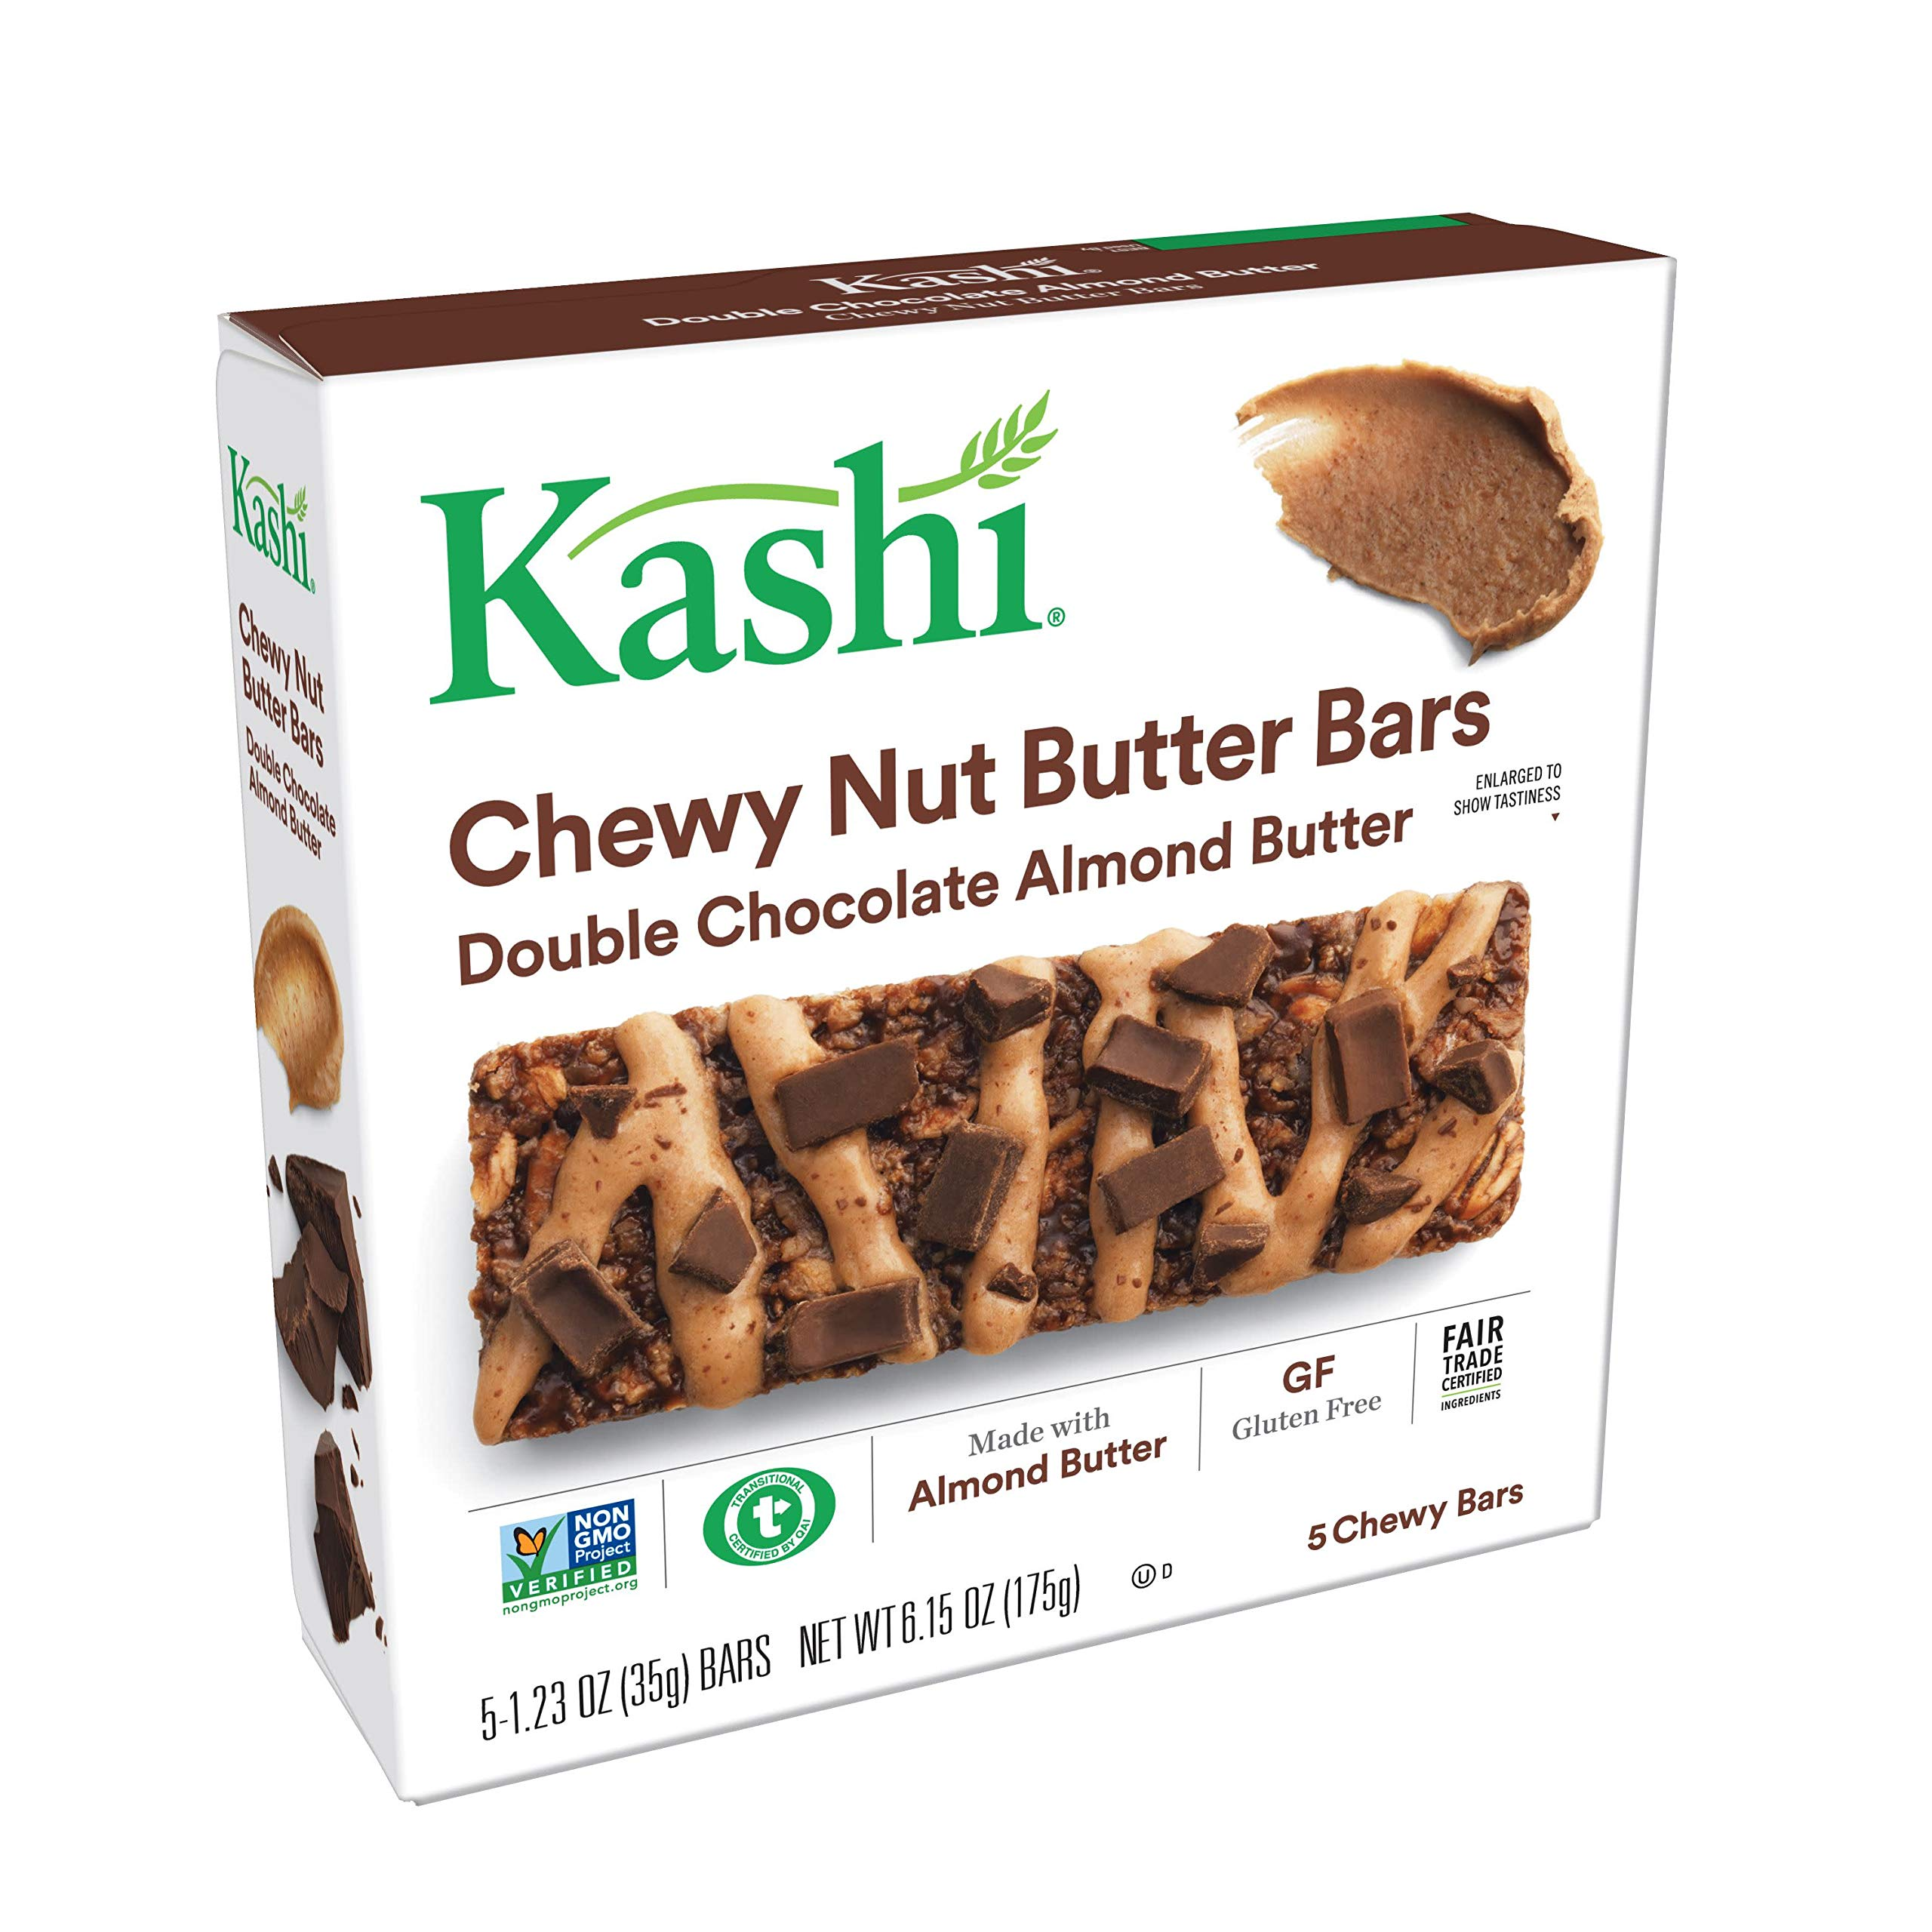 Kashi, Chewy Nut Butter Bars, Double Chocolate Almond Butter, Gluten Free, Non-GMO, 6.15 oz (5 Count)(Pack of 8) by Kashi